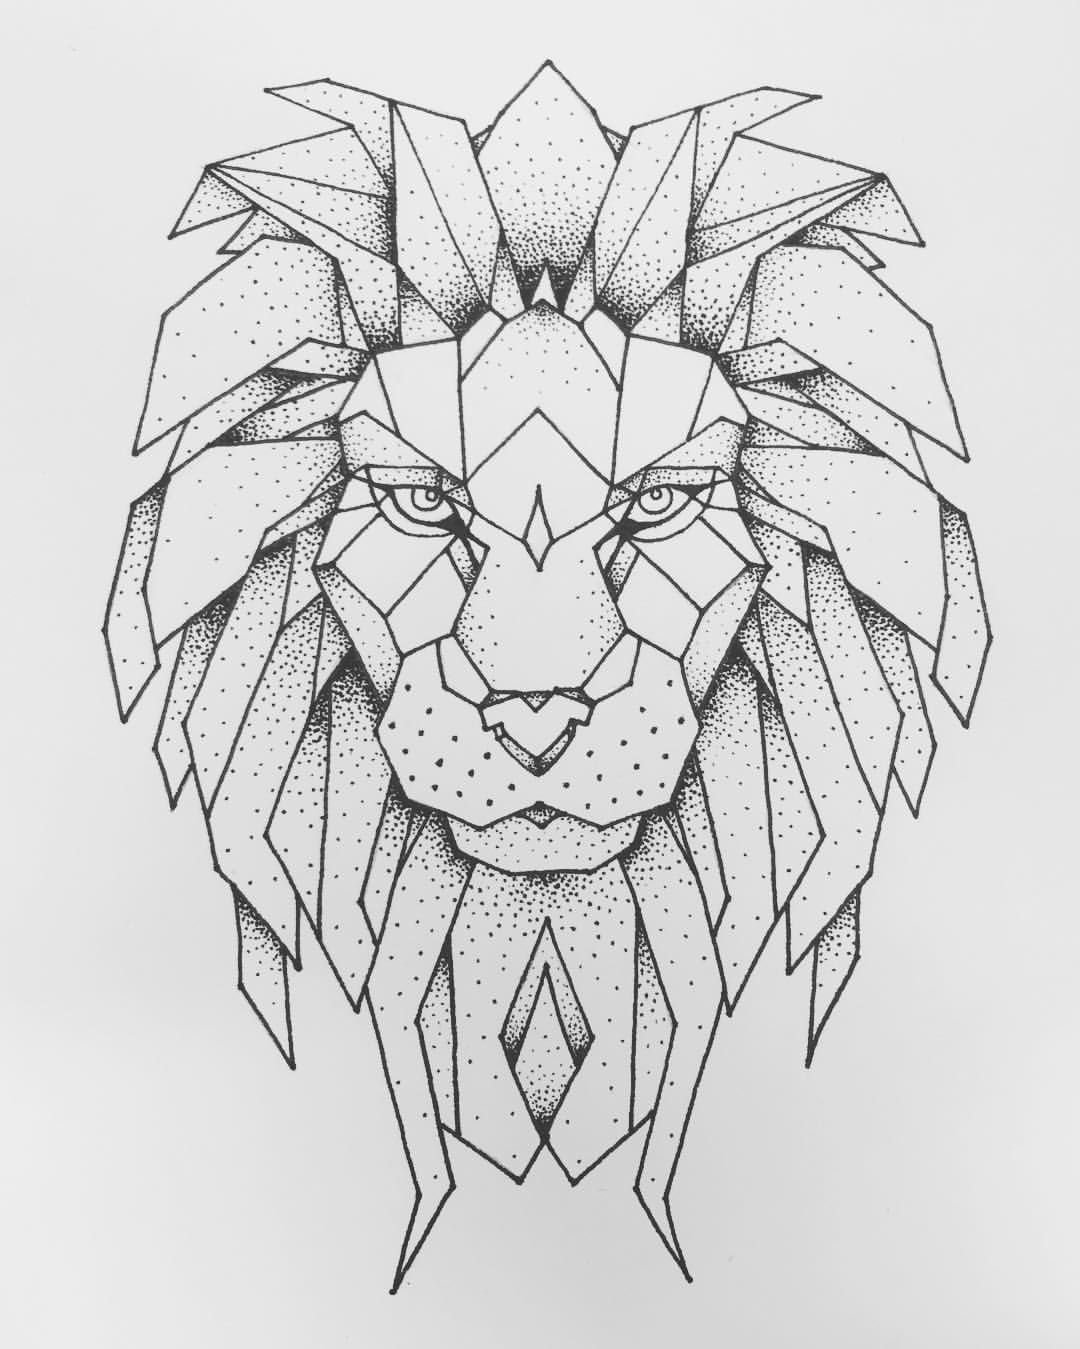 Pin By Kira Holland On Tattoos Pinterest Tattoos Drawings And